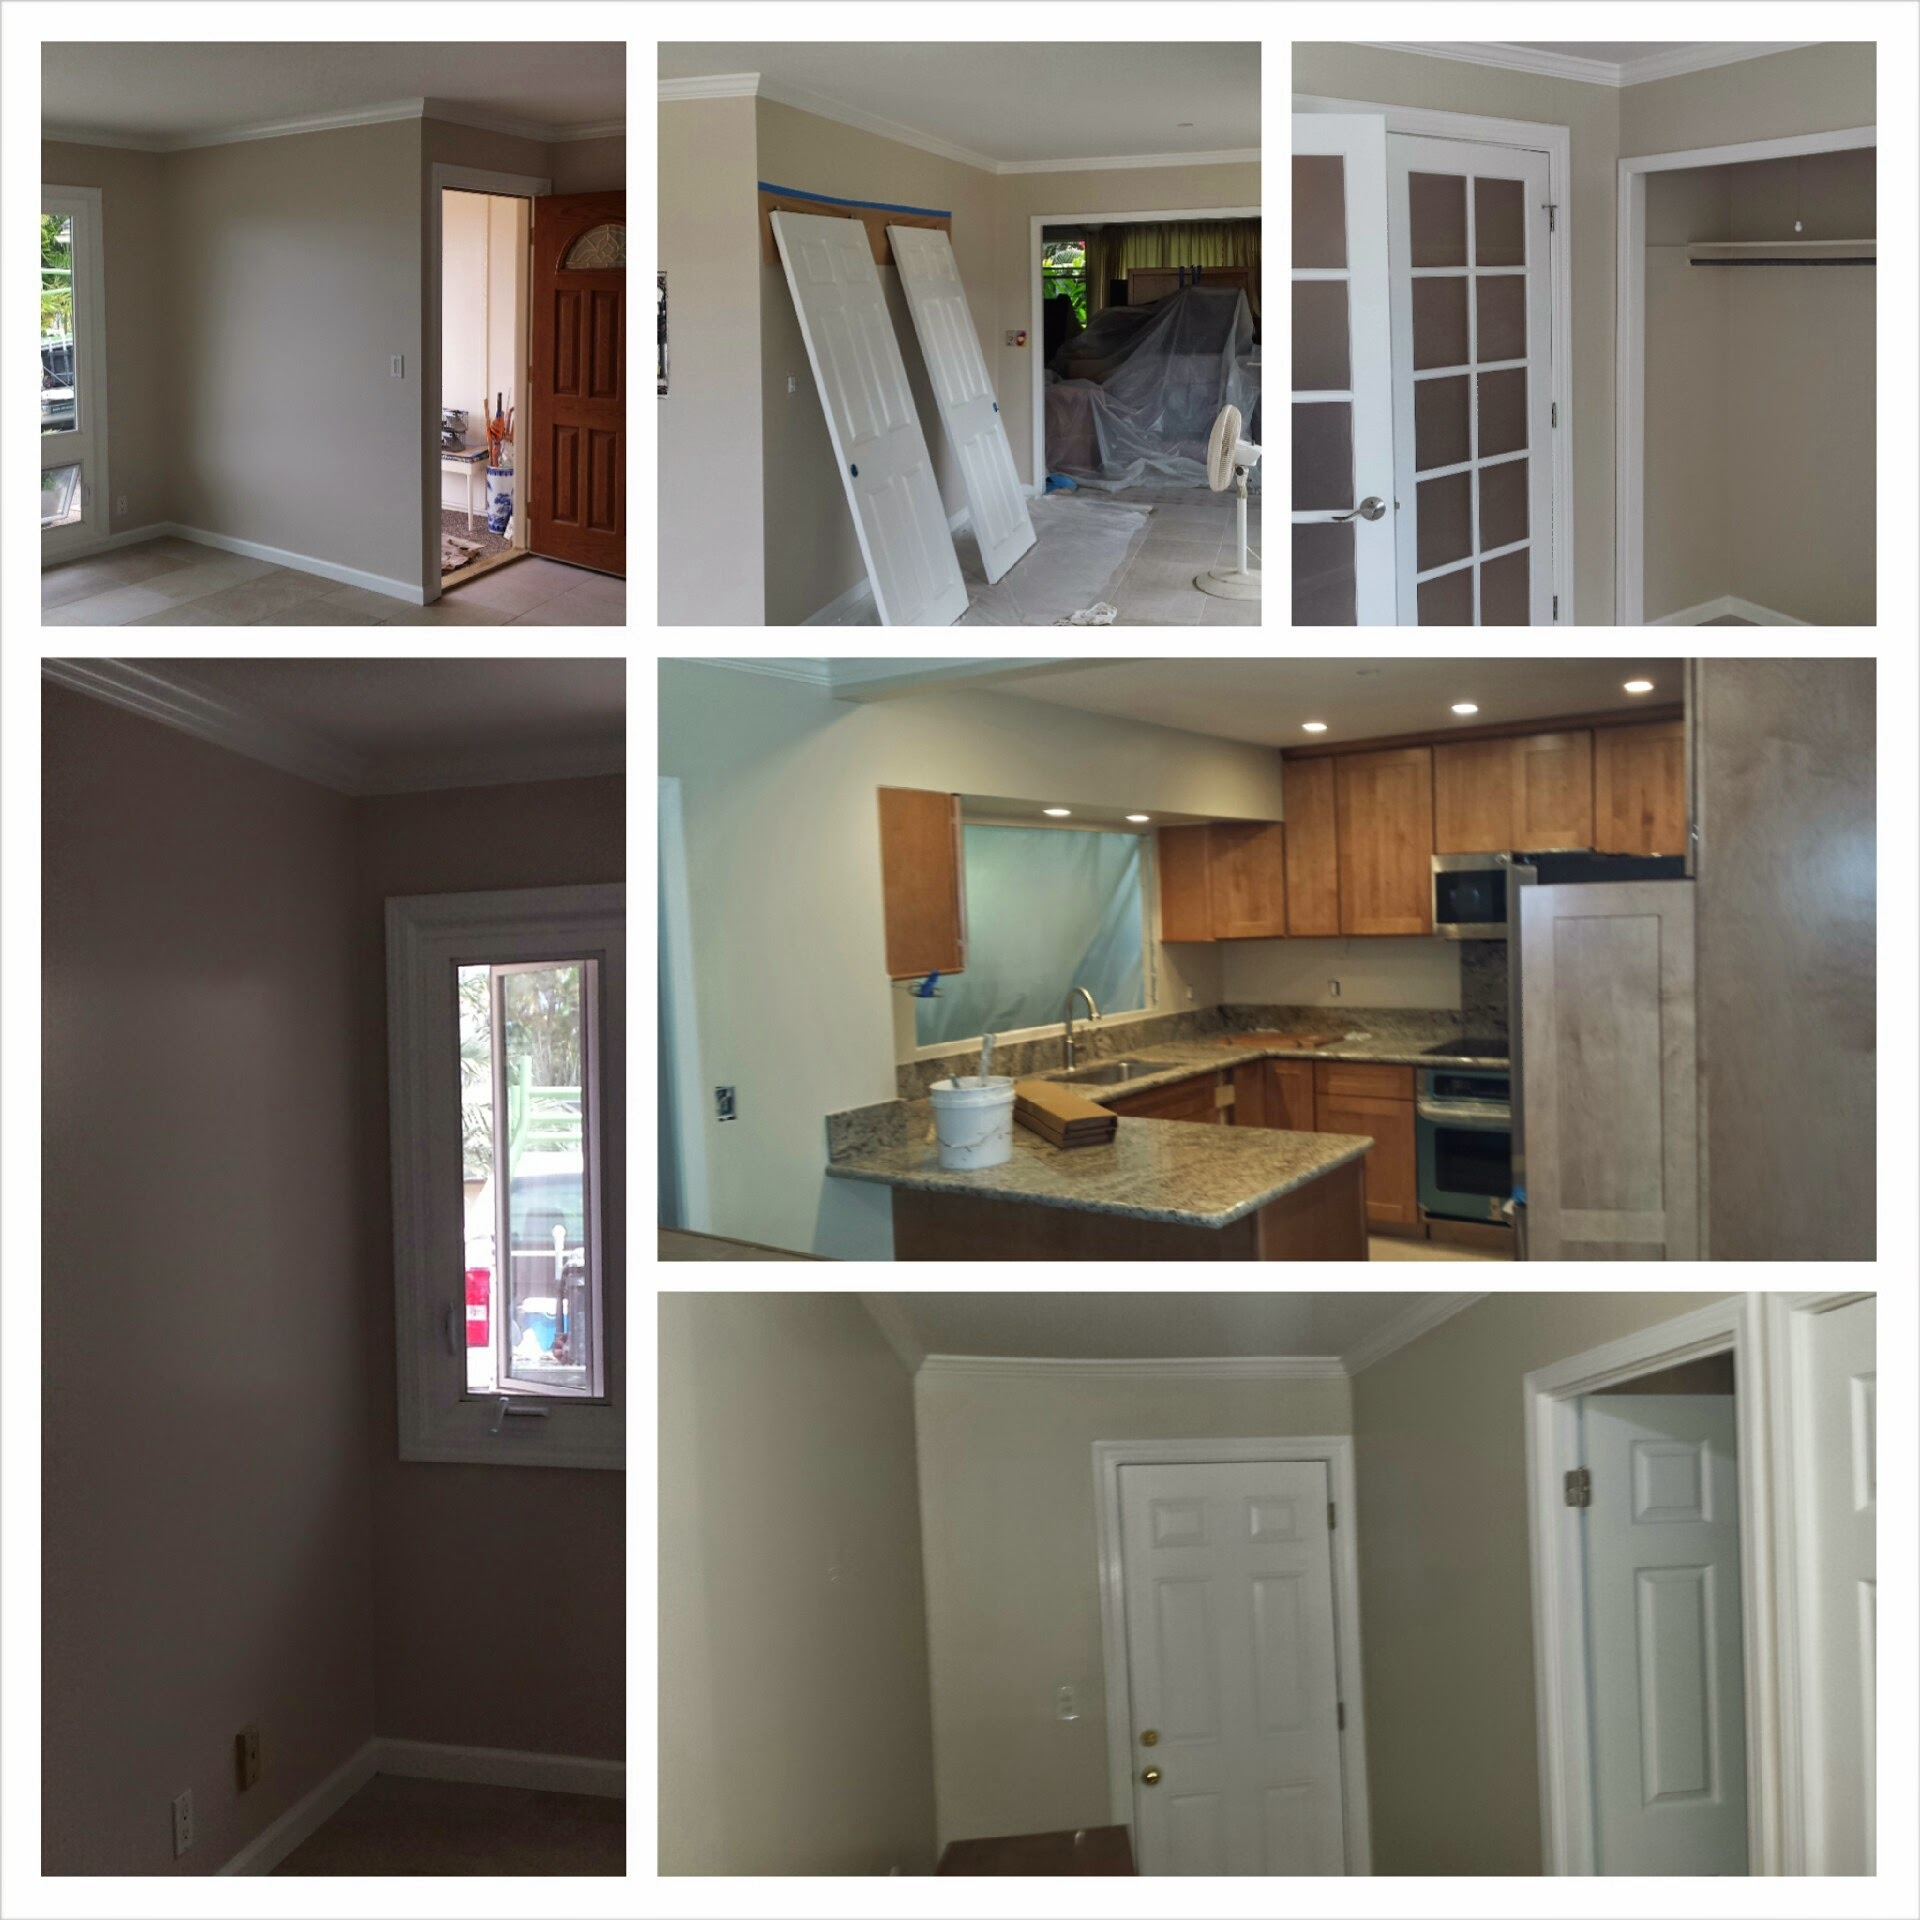 Collage of home interior, including kitchen, being renovated by Clinton's Painting